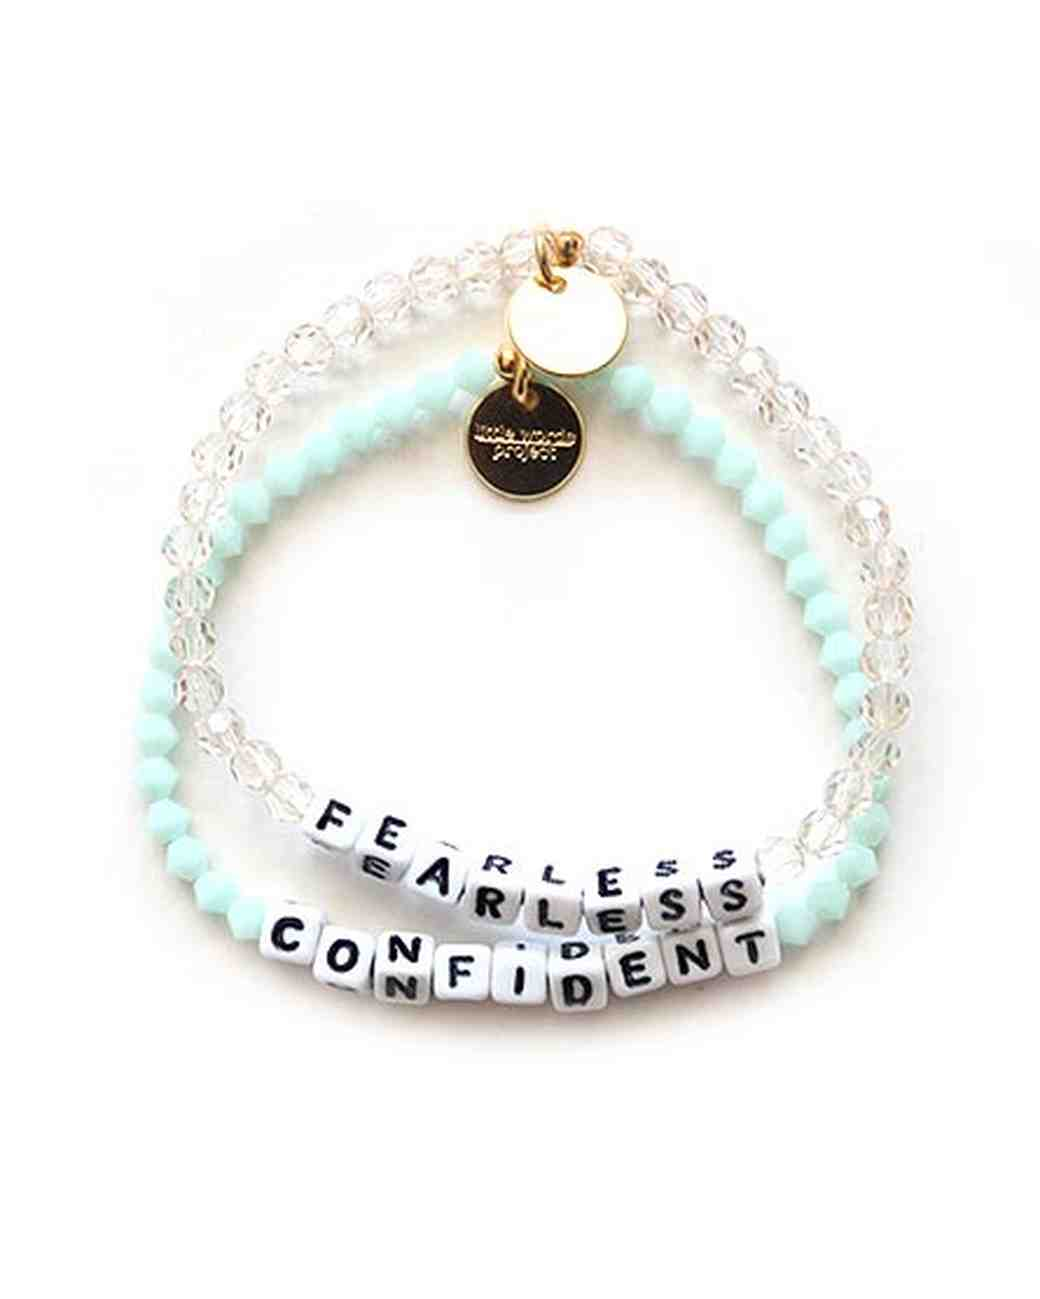 galentines-day-gifts-for-friends-little-words-project-bracelets-girltalk-collection-0216.jpg